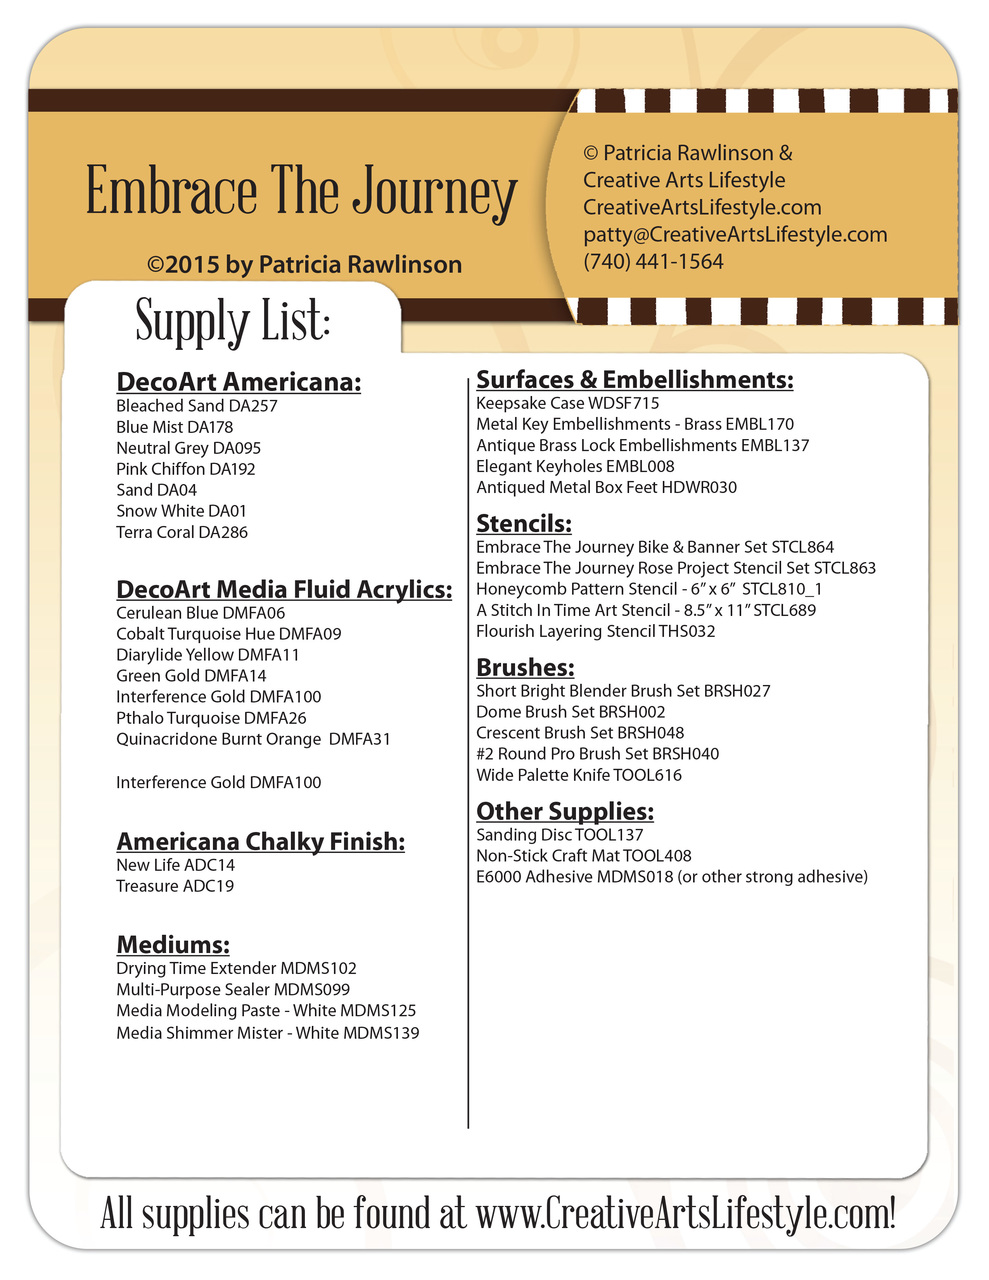 Embrace The Journey - E-packet - Patricia Rawlinson